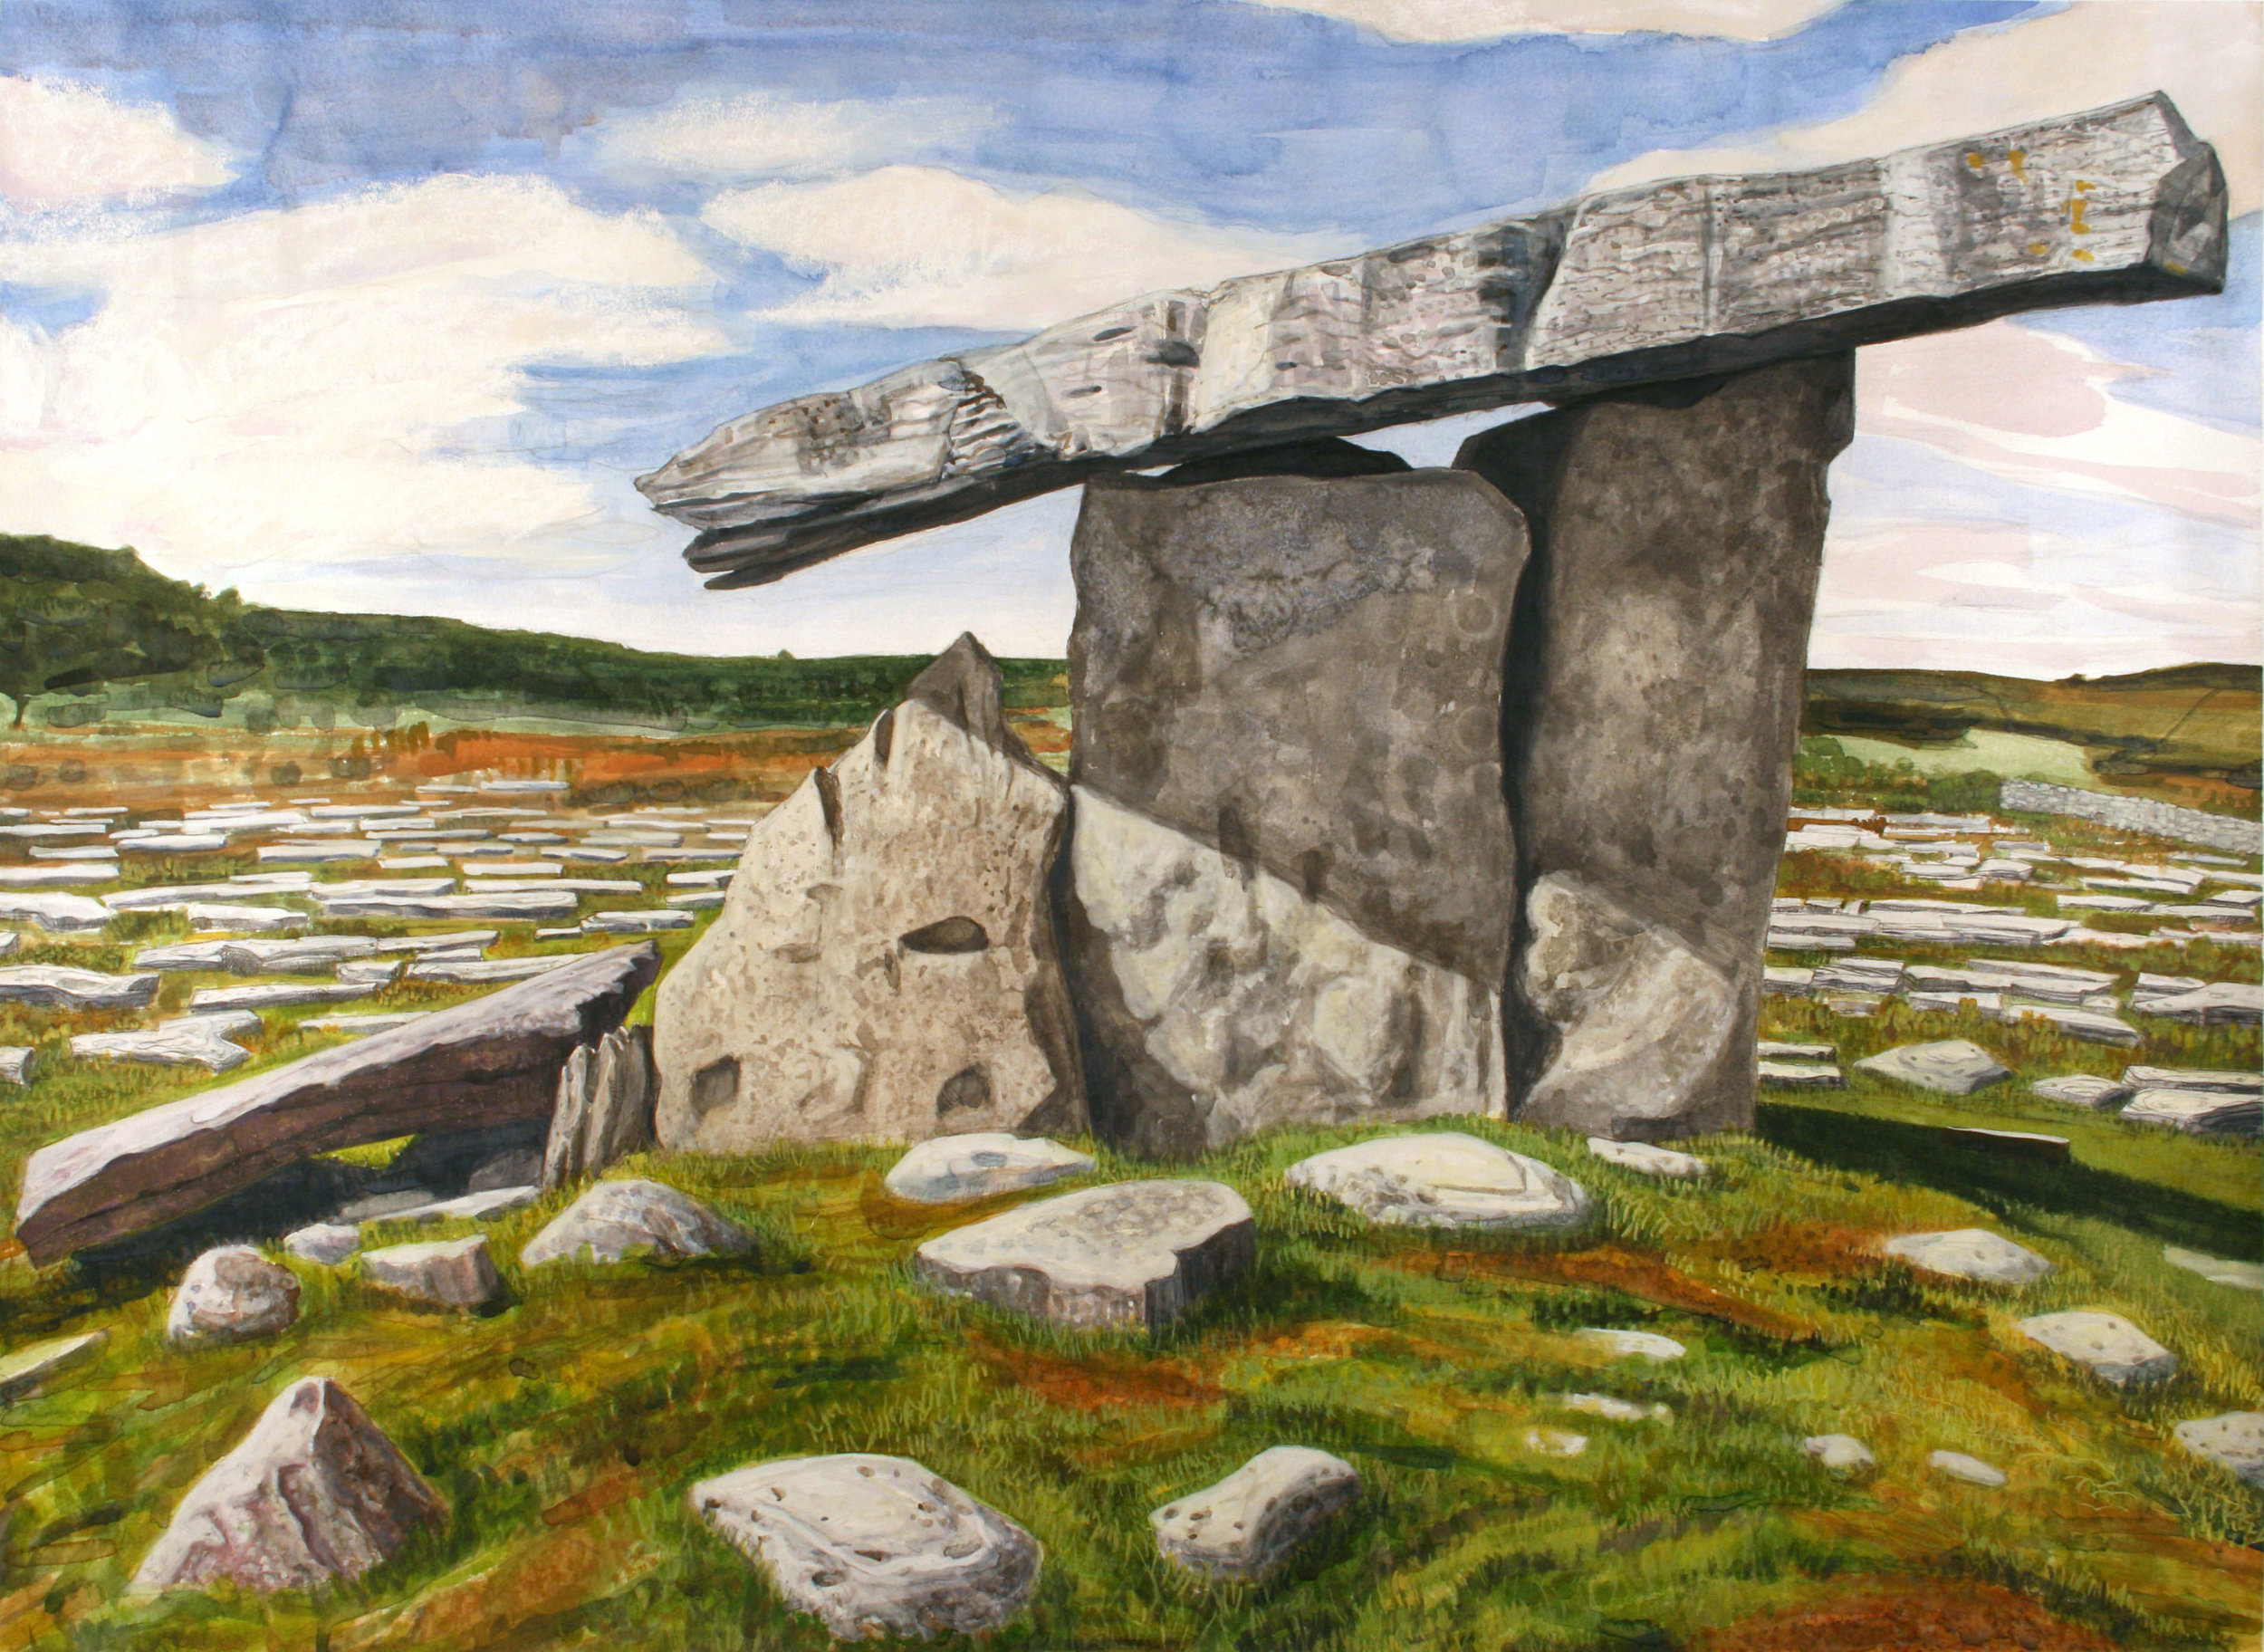 "Poulnabrone Doleman   Watercolor/pastel/pencil, 24x33"", 2014"